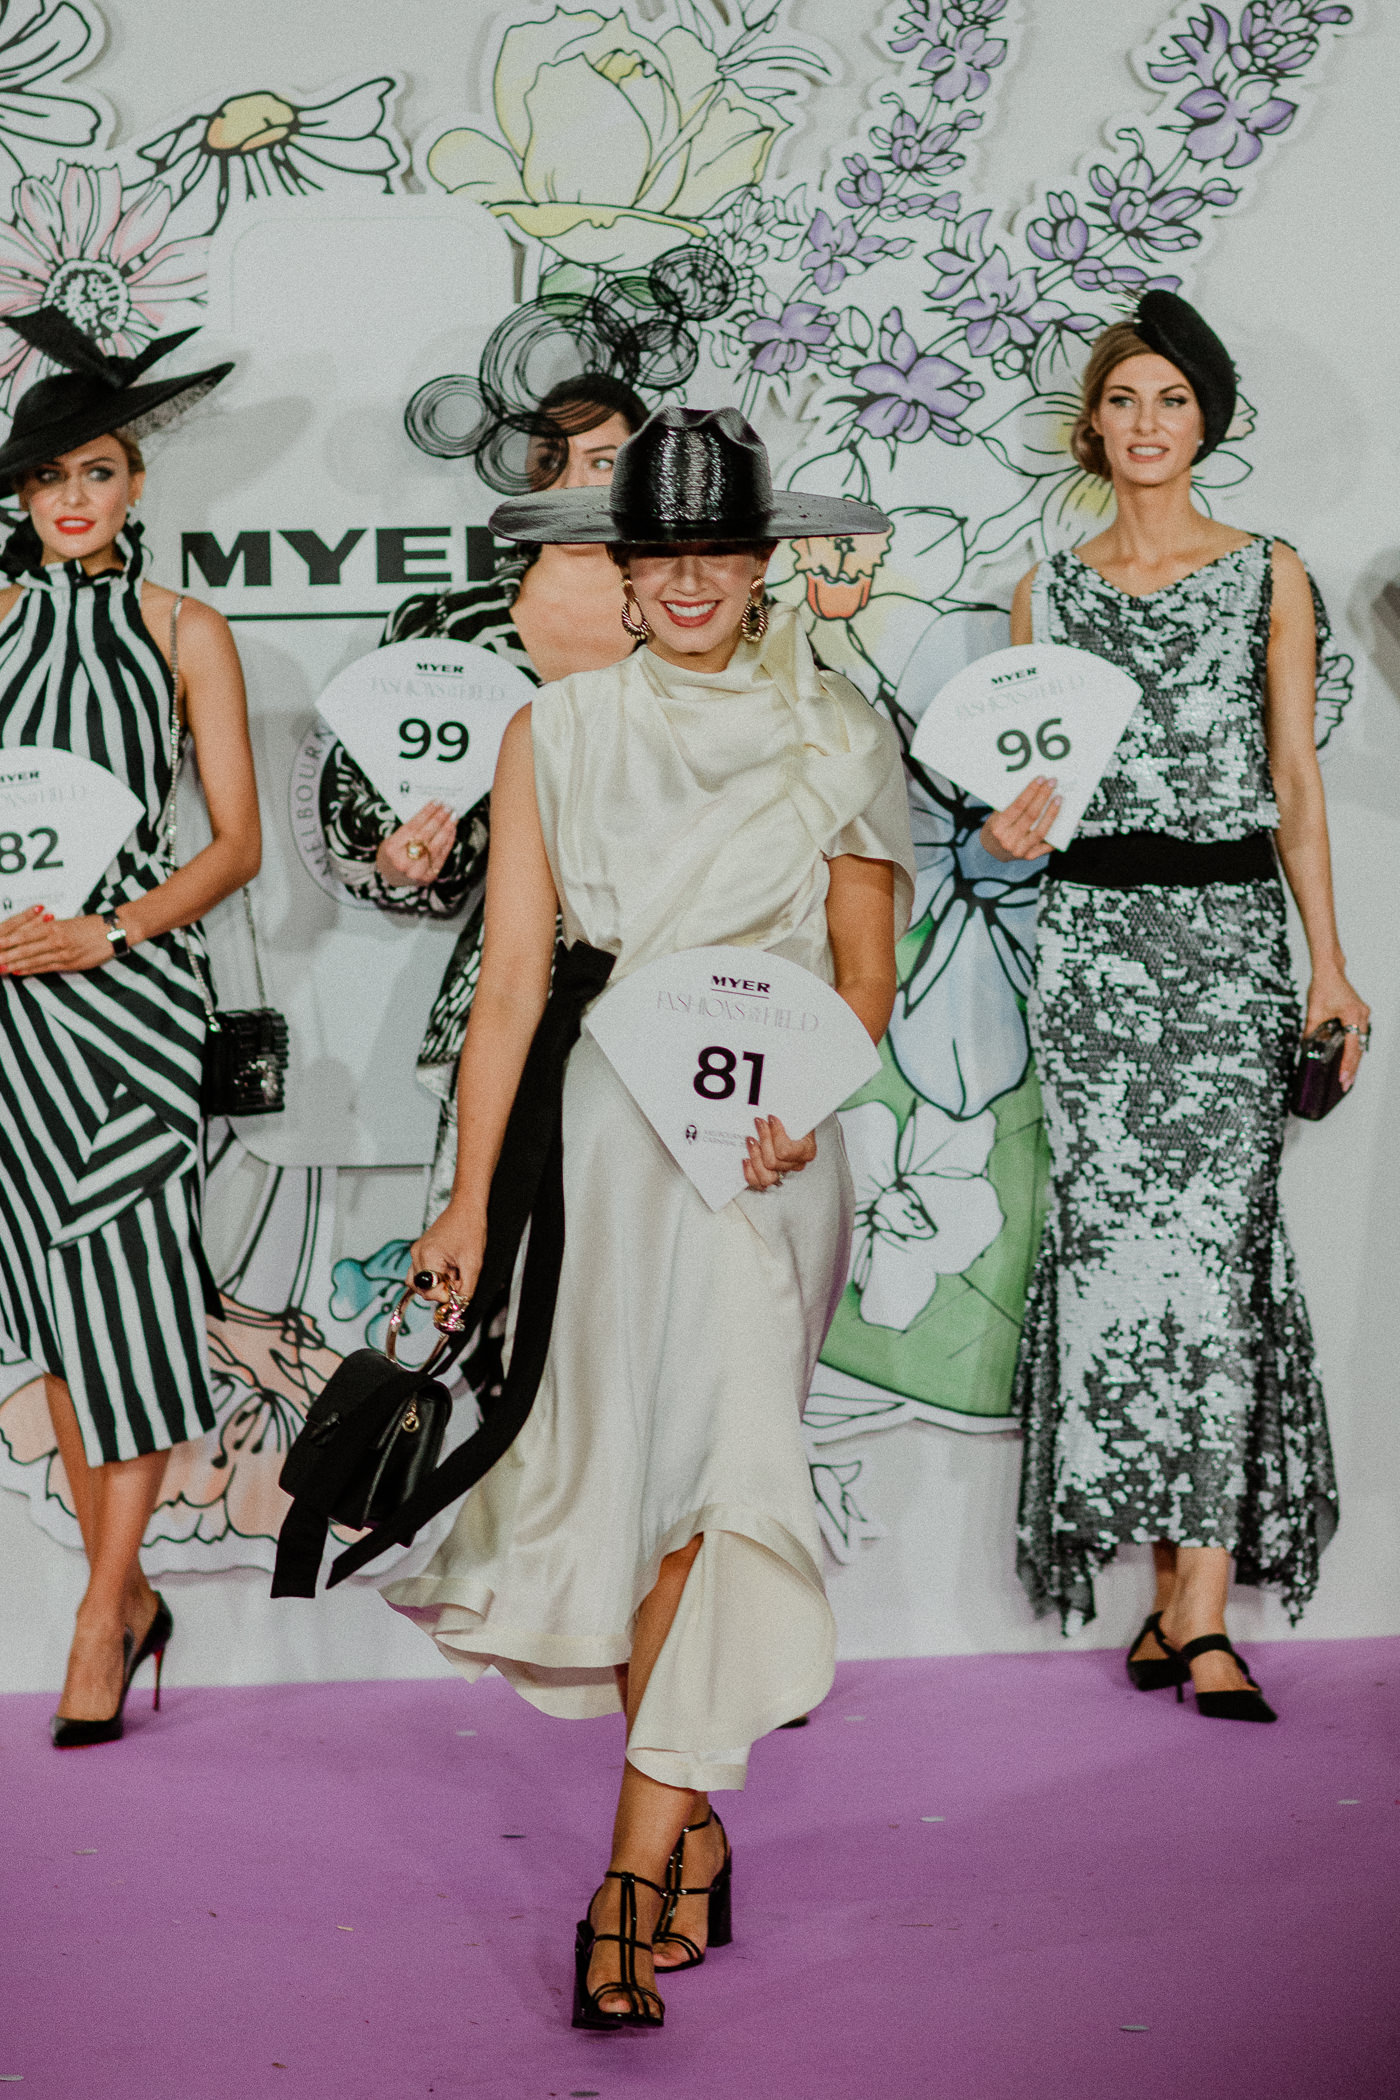 2nd runner up - FTOF Fashion winner - stylish derby day outfit